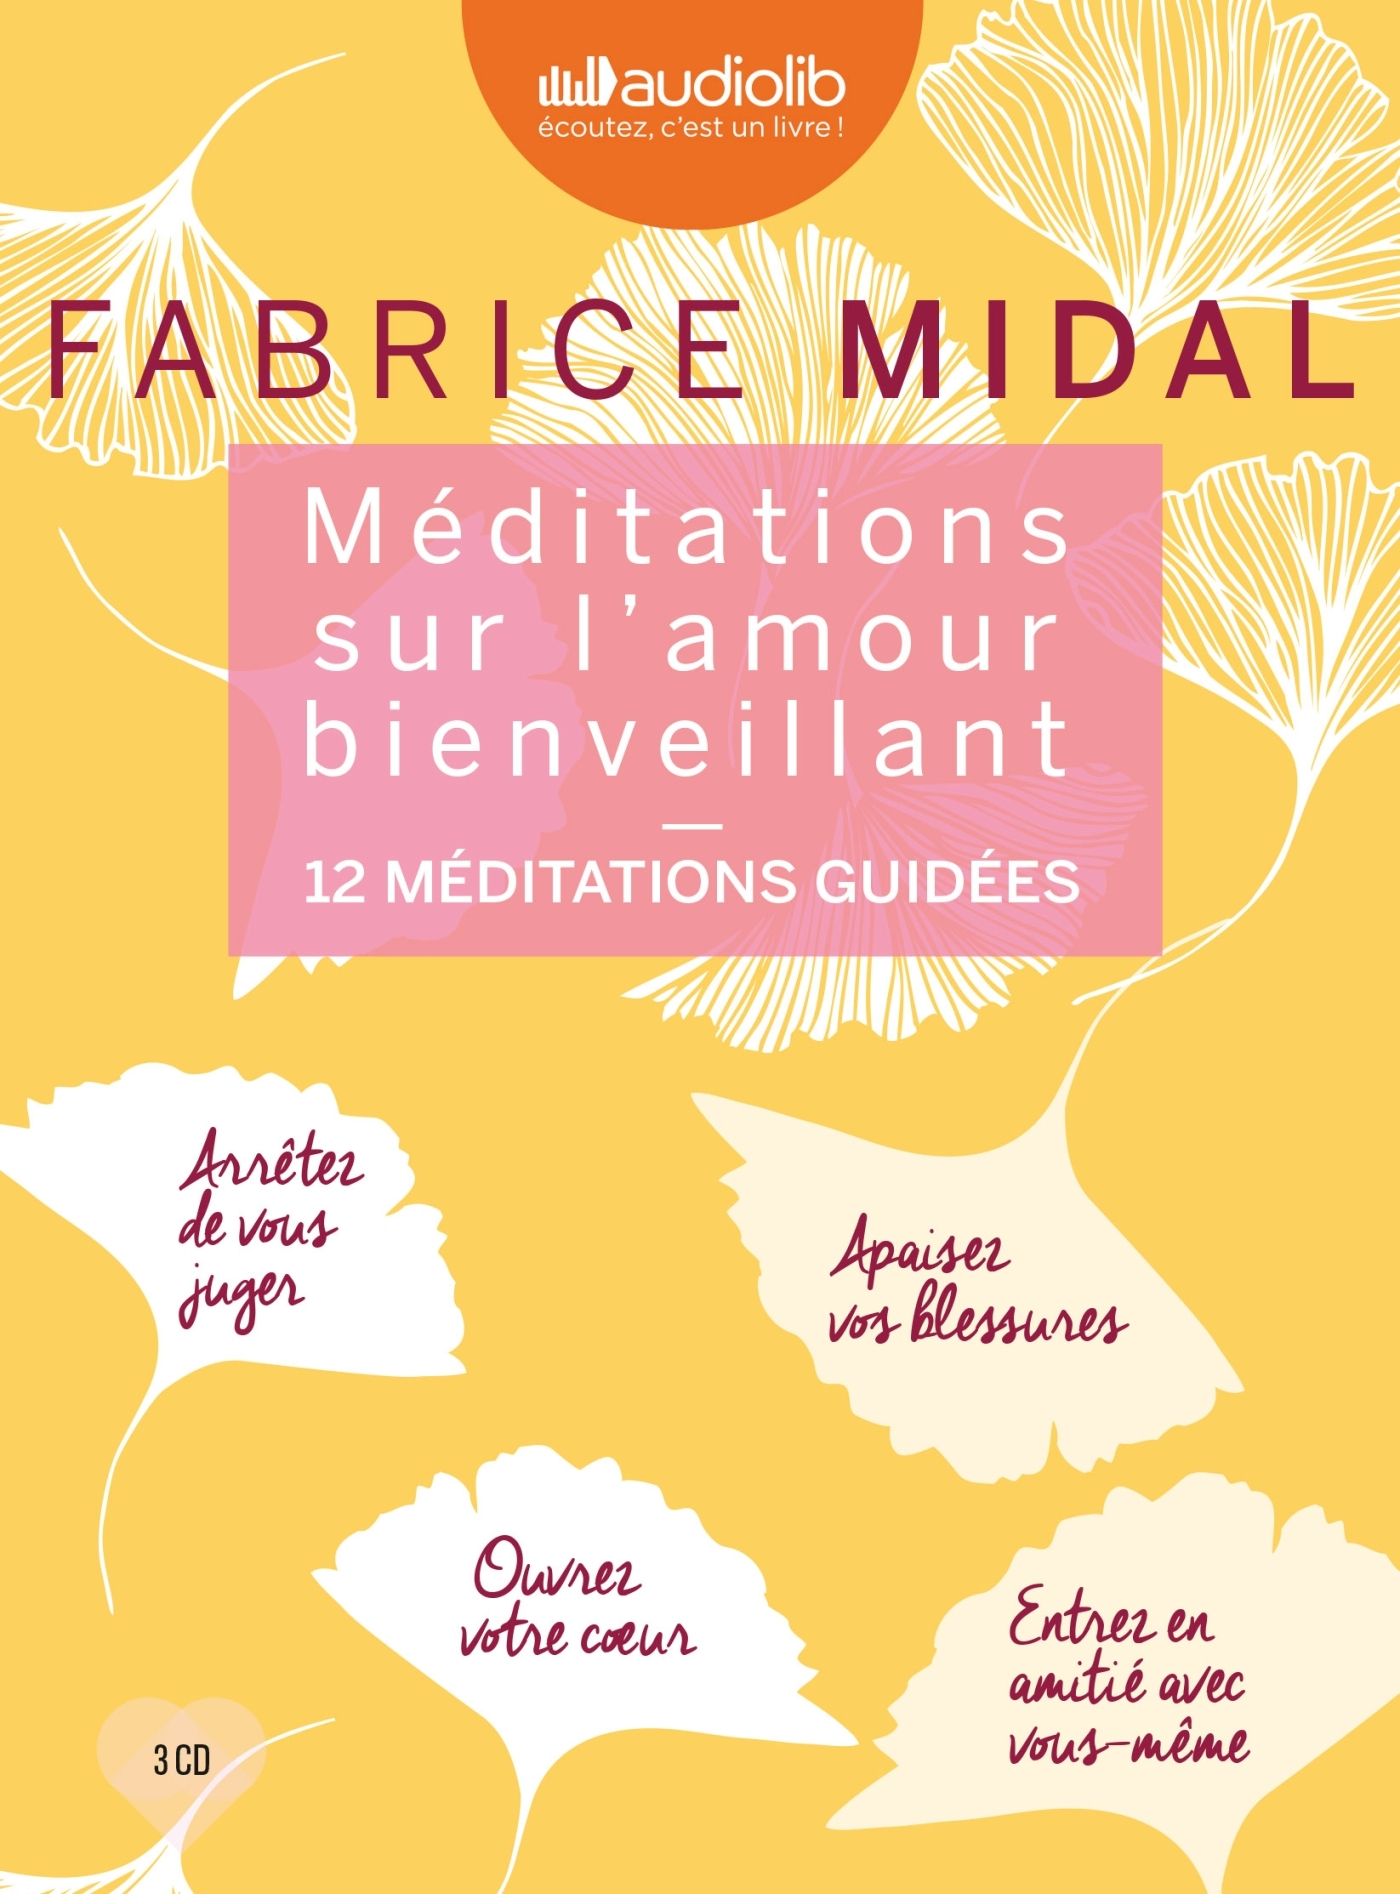 MEDITATIONS SUR L'AMOUR BIENVEILLANT - LIVRE AUDIO 3 CD AUDIO : 2CD DE 12 MEDITATIONS ET 1 CD D'ENSE